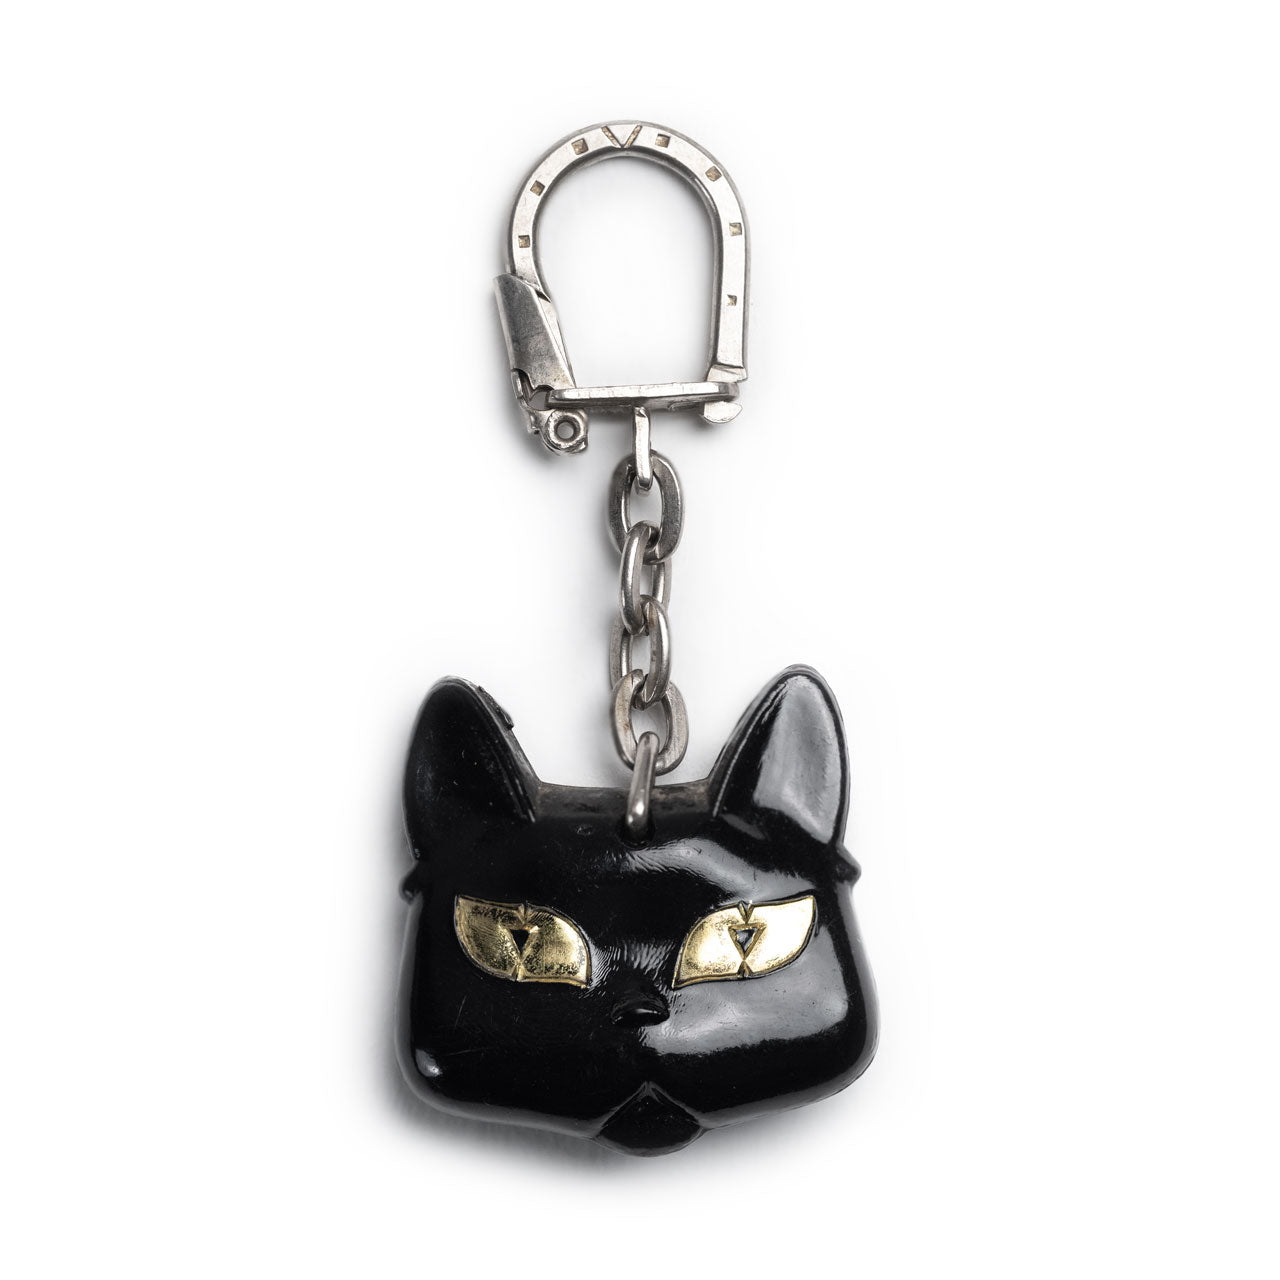 Mr. Cupps x Uncrate Vintage Marchal Keychain